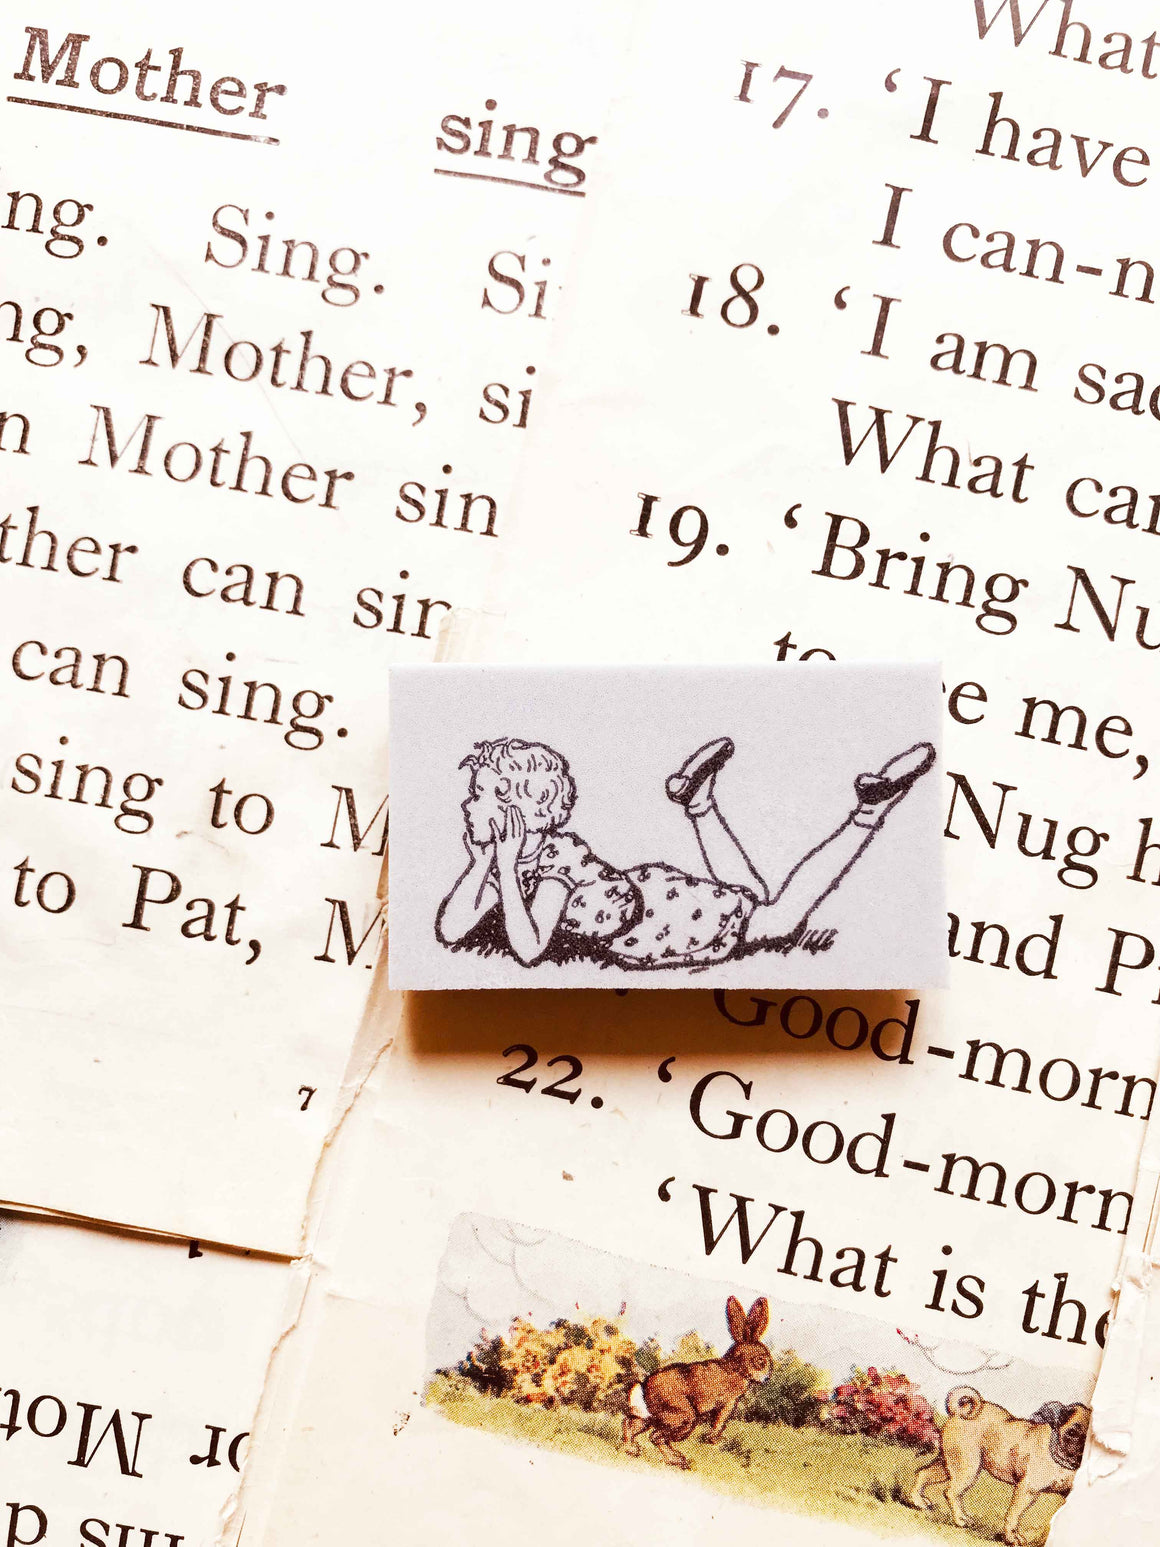 'Daydreaming Girl' - PRE-ORDER (Mic Moc Rubber Stamps Feb 2020) from micmoc.com at Mic Moc